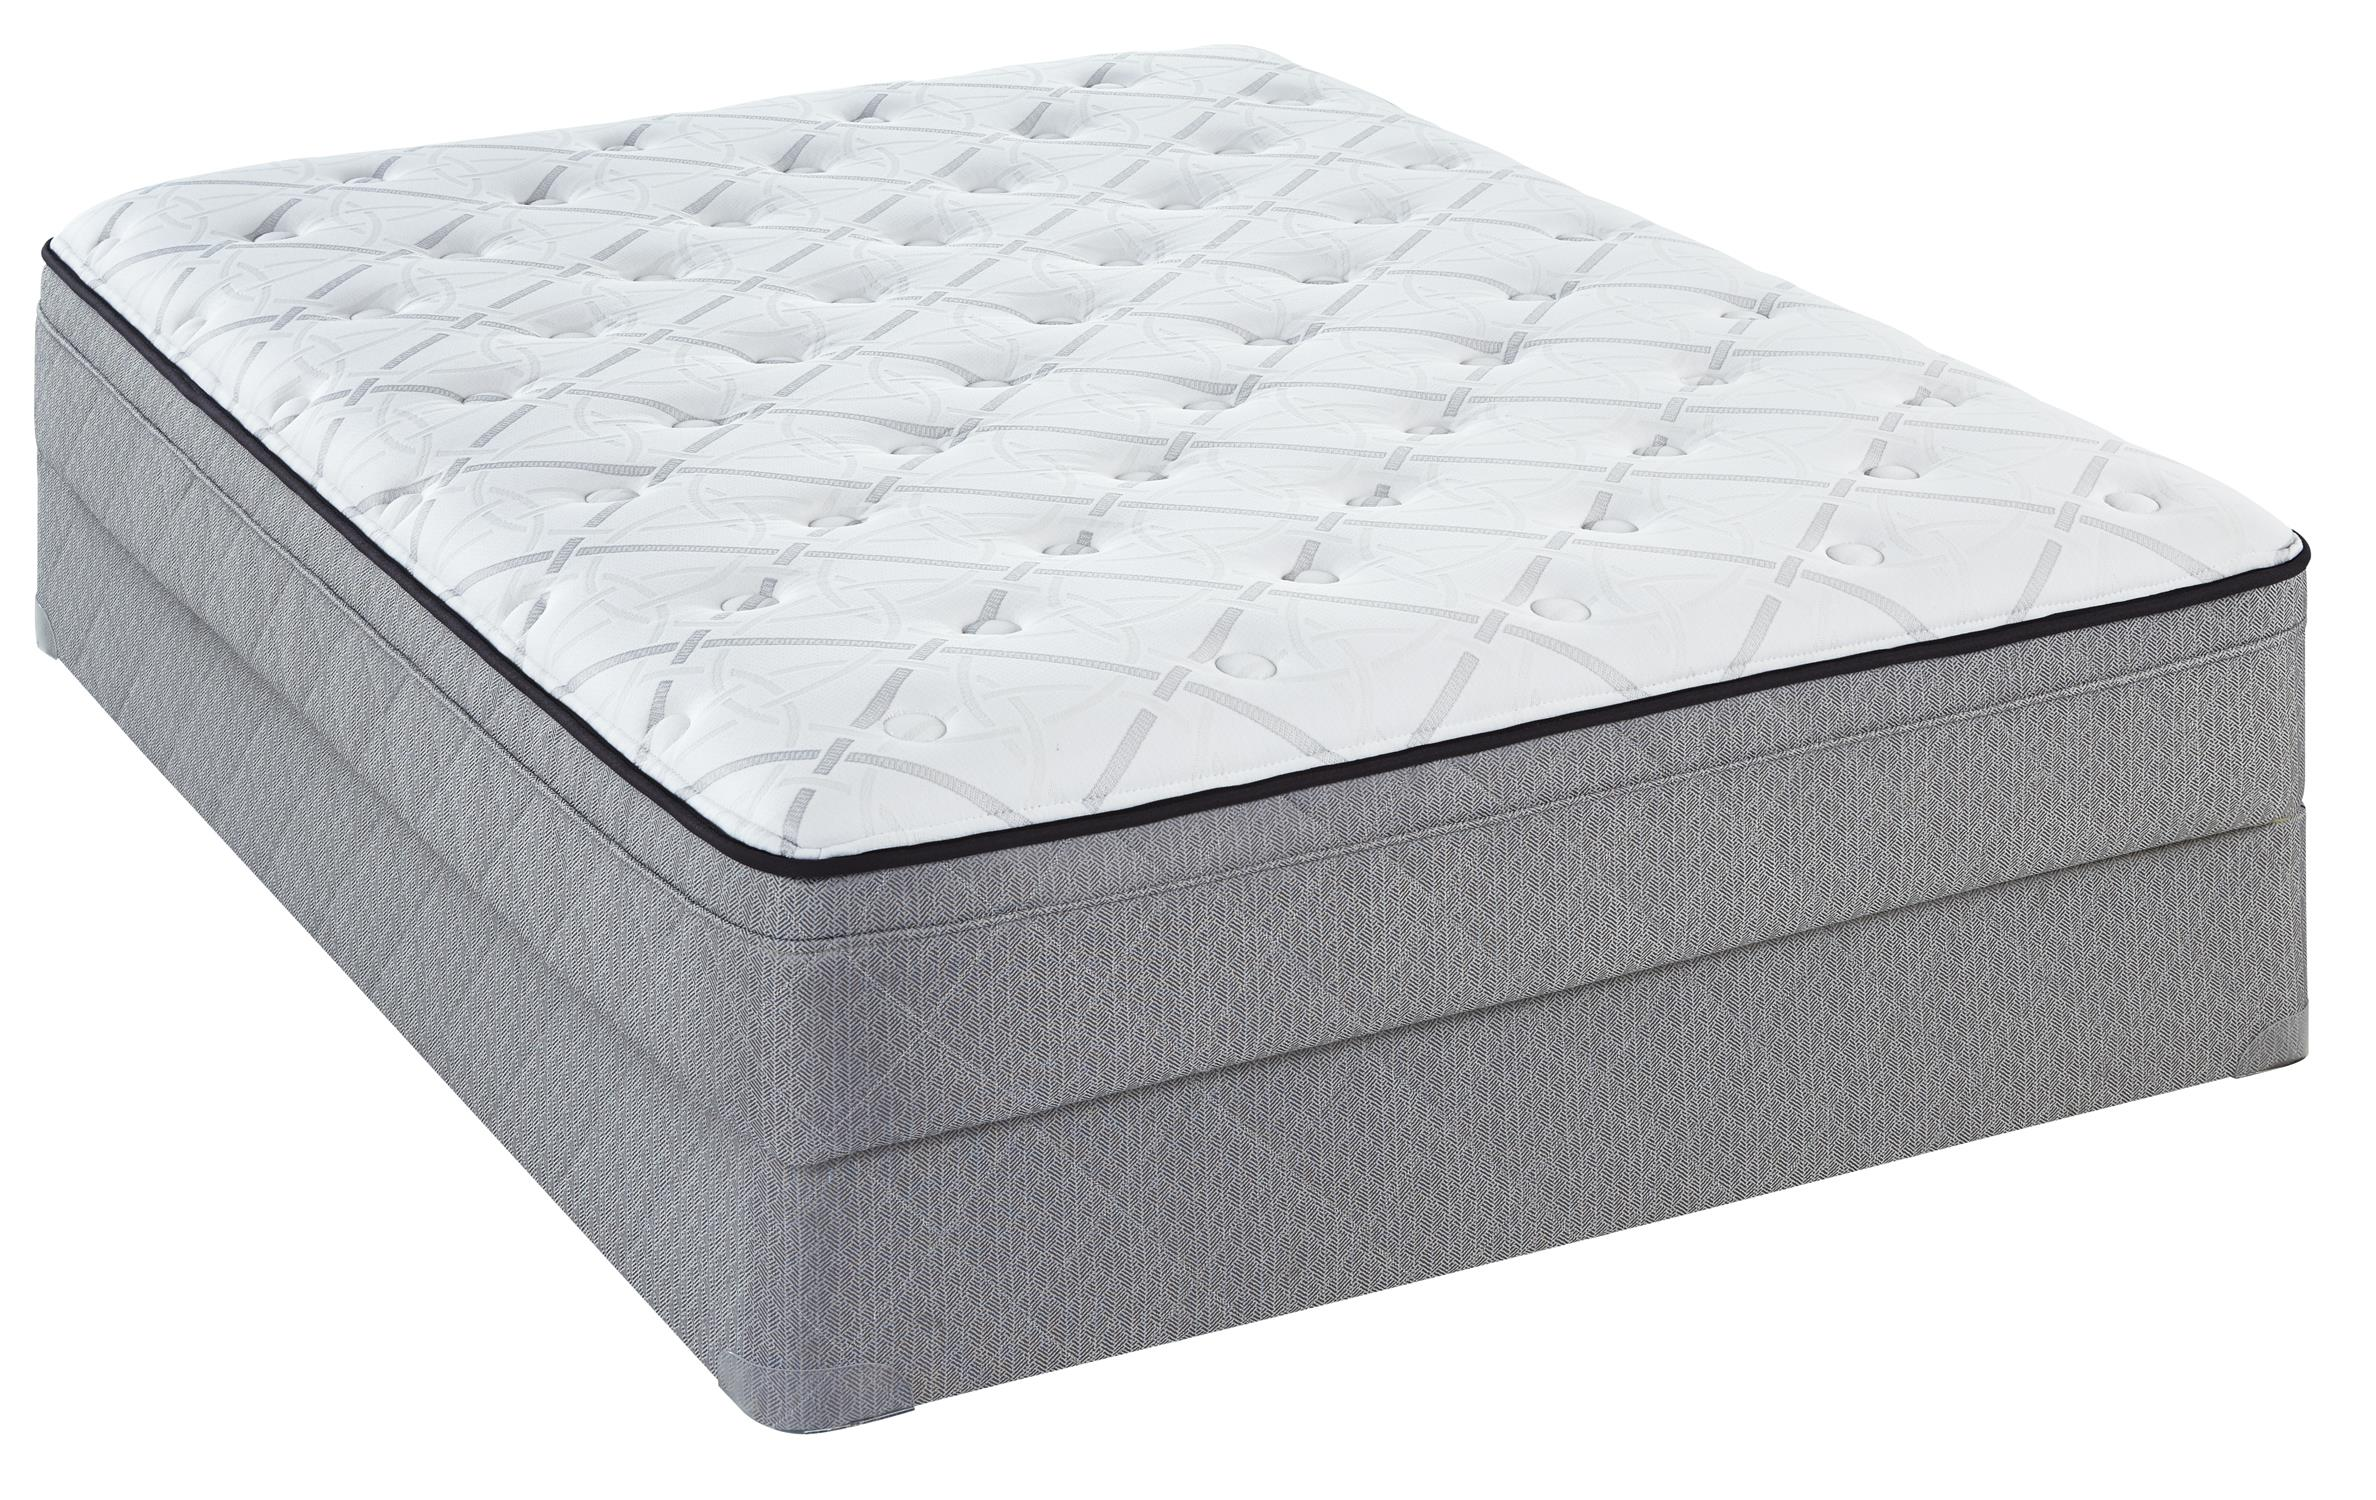 Sealy Sealy Brand Level 3 Full Plush ET Mattress Set - Item Number: PlushETBG-F+FoundationF